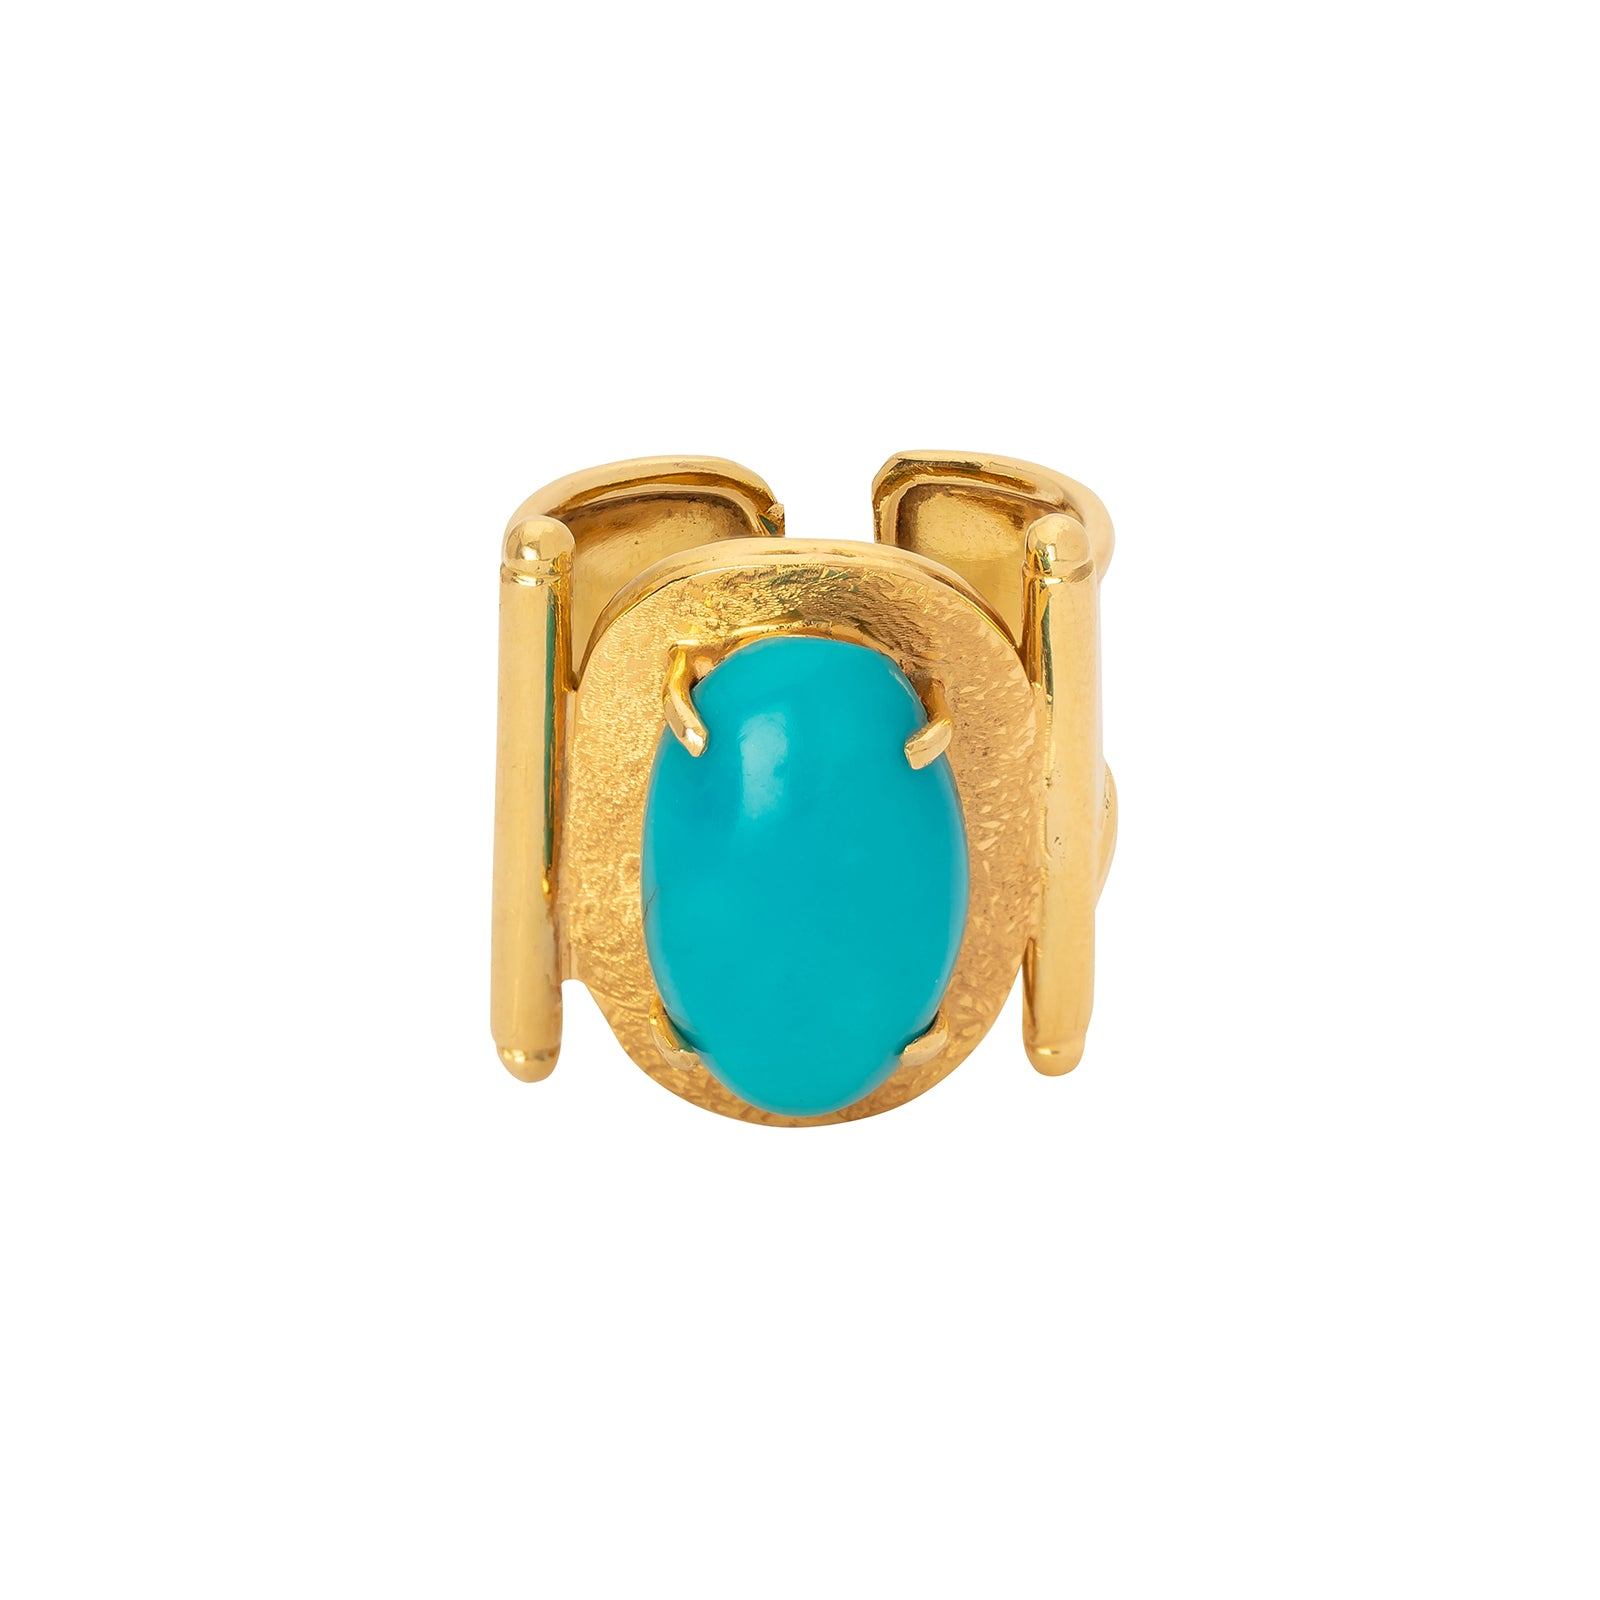 Antique & Vintage Jewelry Gold Oval Turquoise Ring - Rings - Broken English Jewelry